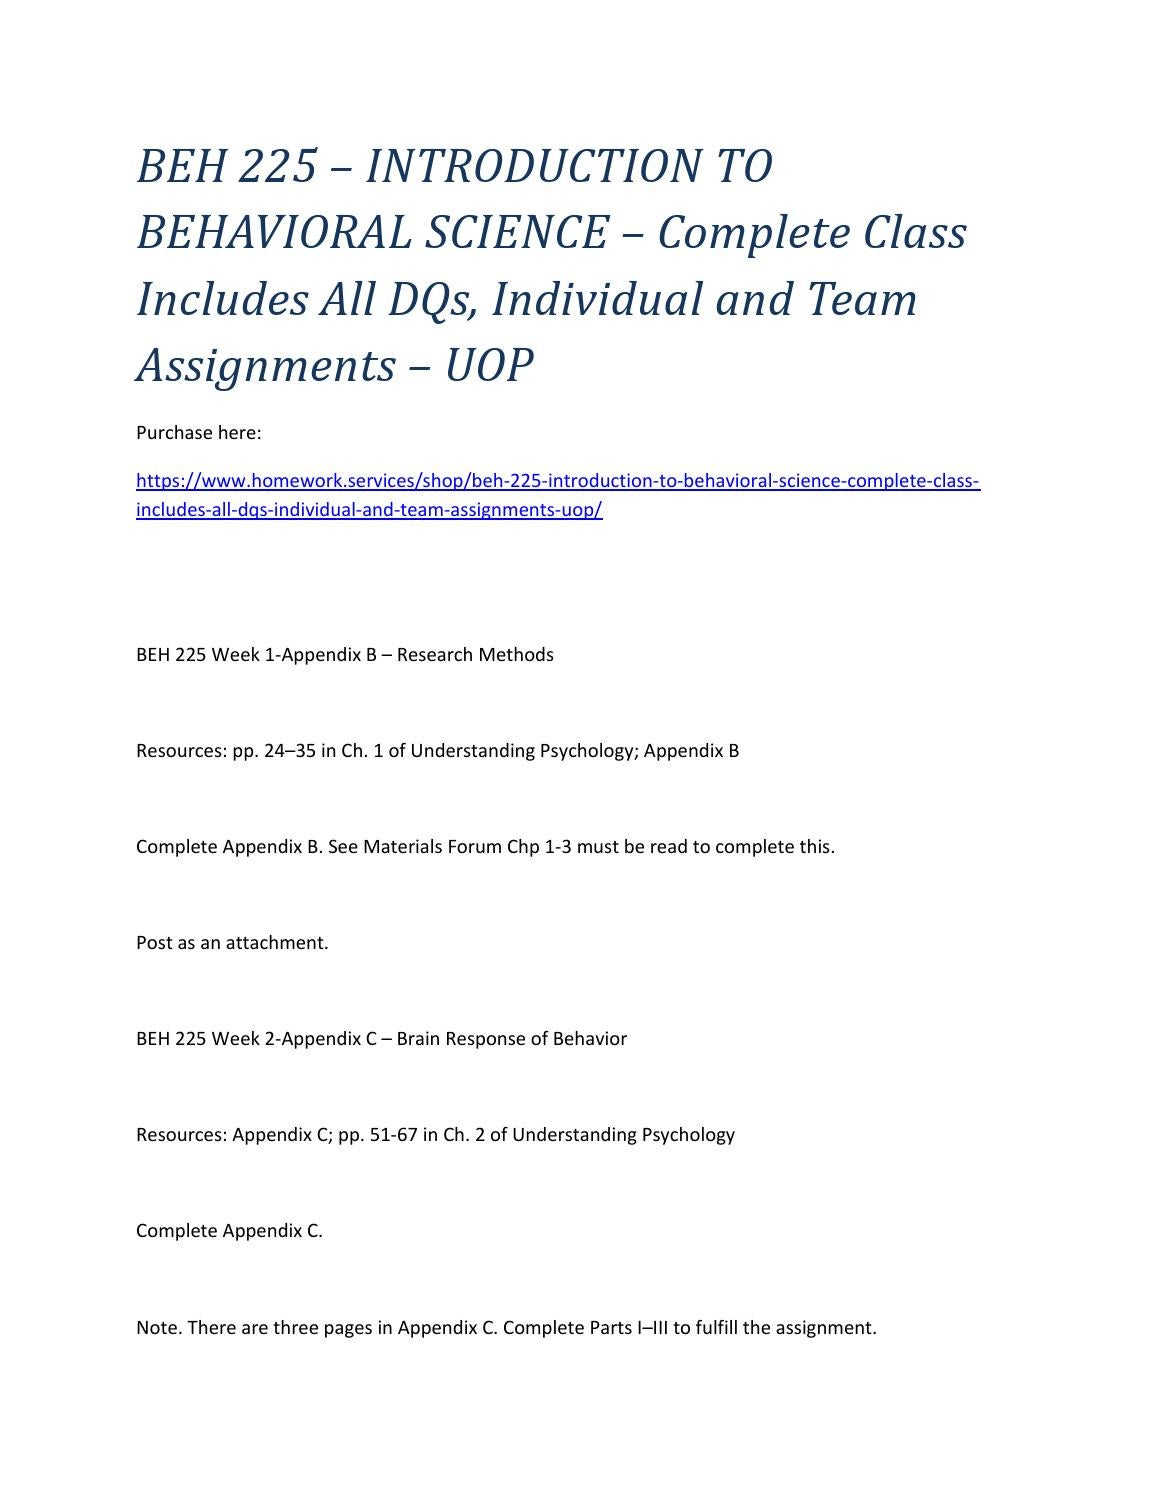 Beh 225 Introduction To Behavioral Science Complete Class